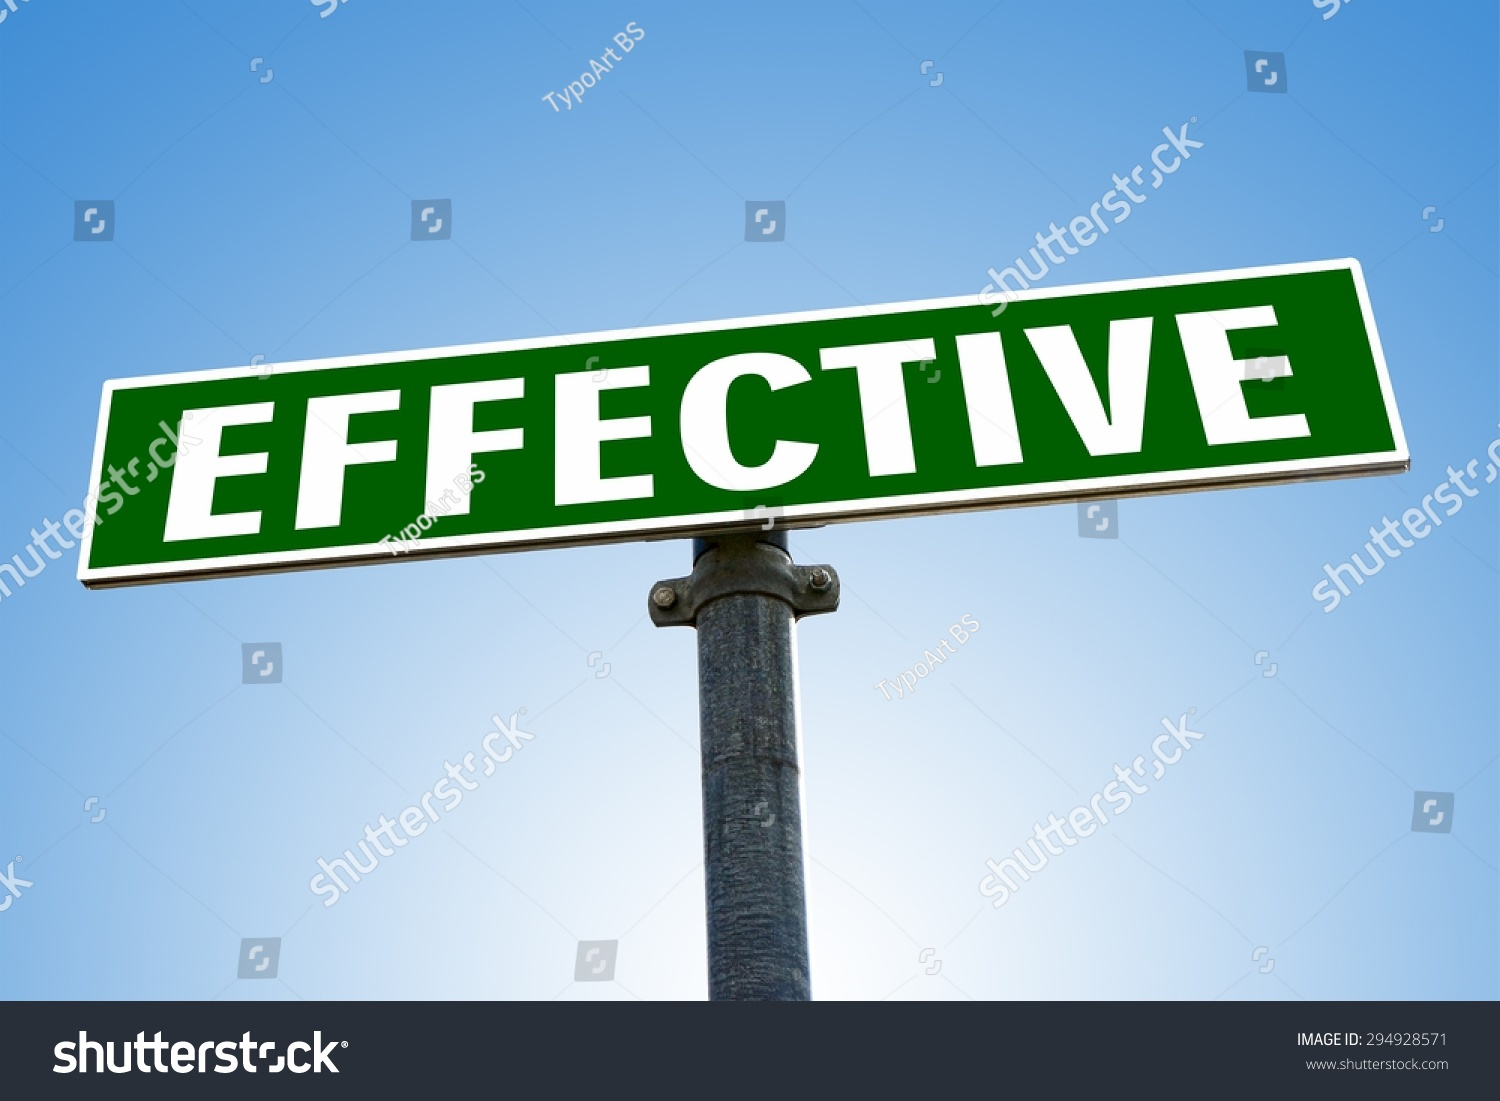 effective word on green road sign stock photo 294928571 shutterstock